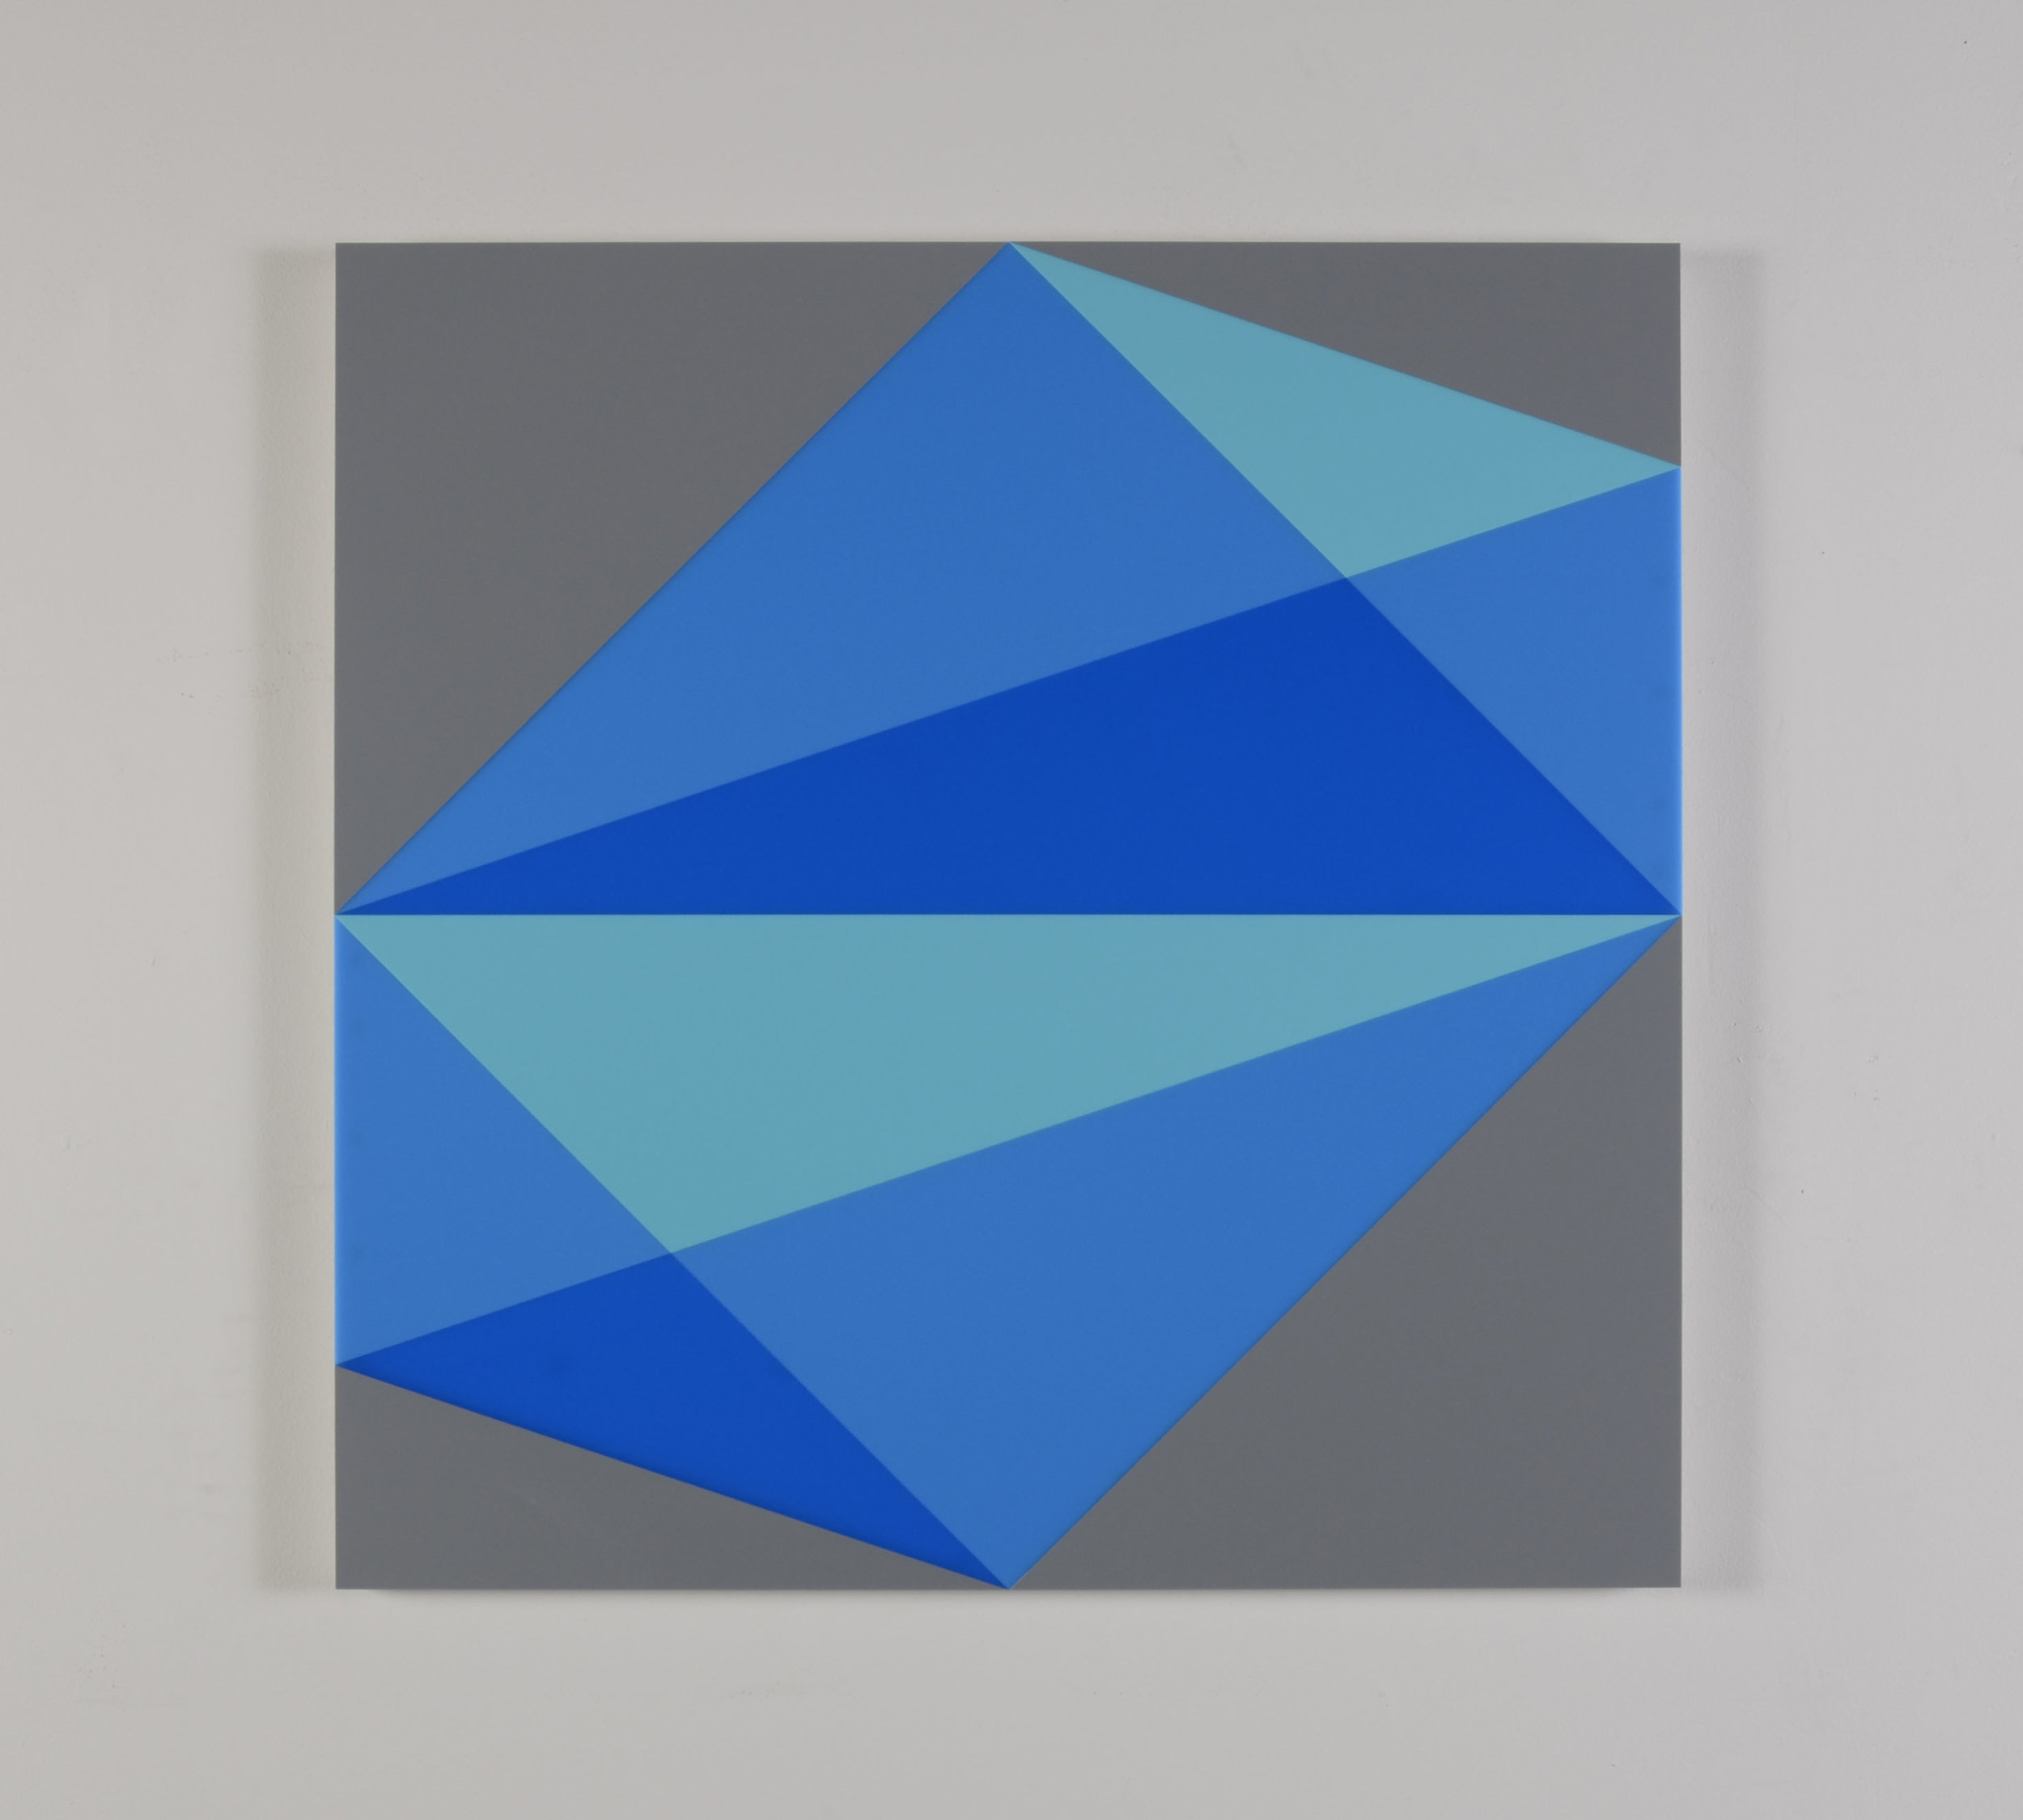 Composition in<br>2307 Turquoise, 2648 Blue,<br>2051 Blue and 3001 Gray